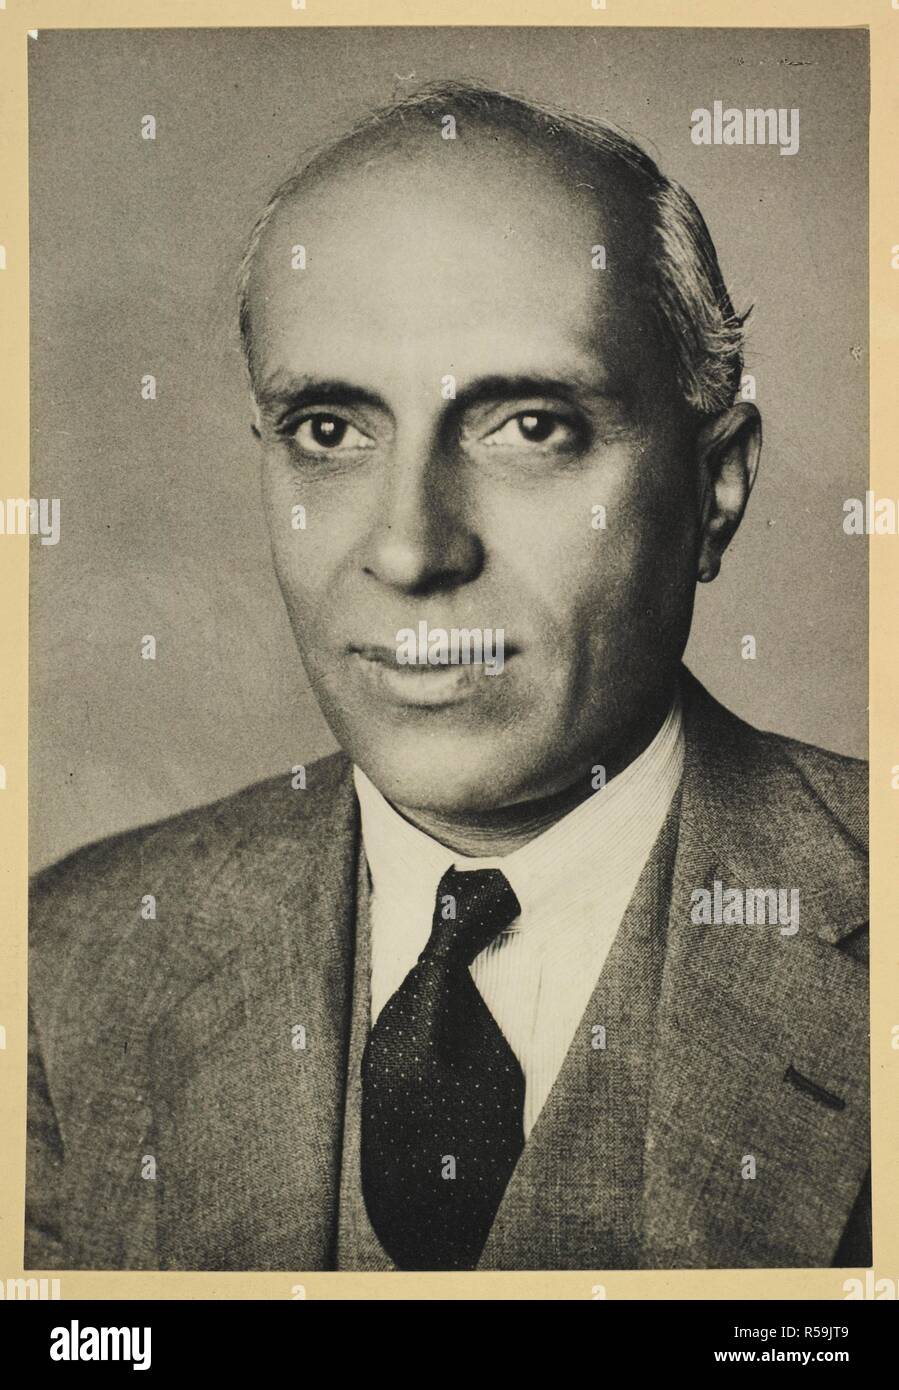 A head and shoulders portrait of Jawaharlal Nehru. Portrait of Pandit Jawaharlal Nehru. c. 1930. Photograph. Source: Photo 308/(1). Author: UNKNOWN. - Stock Image